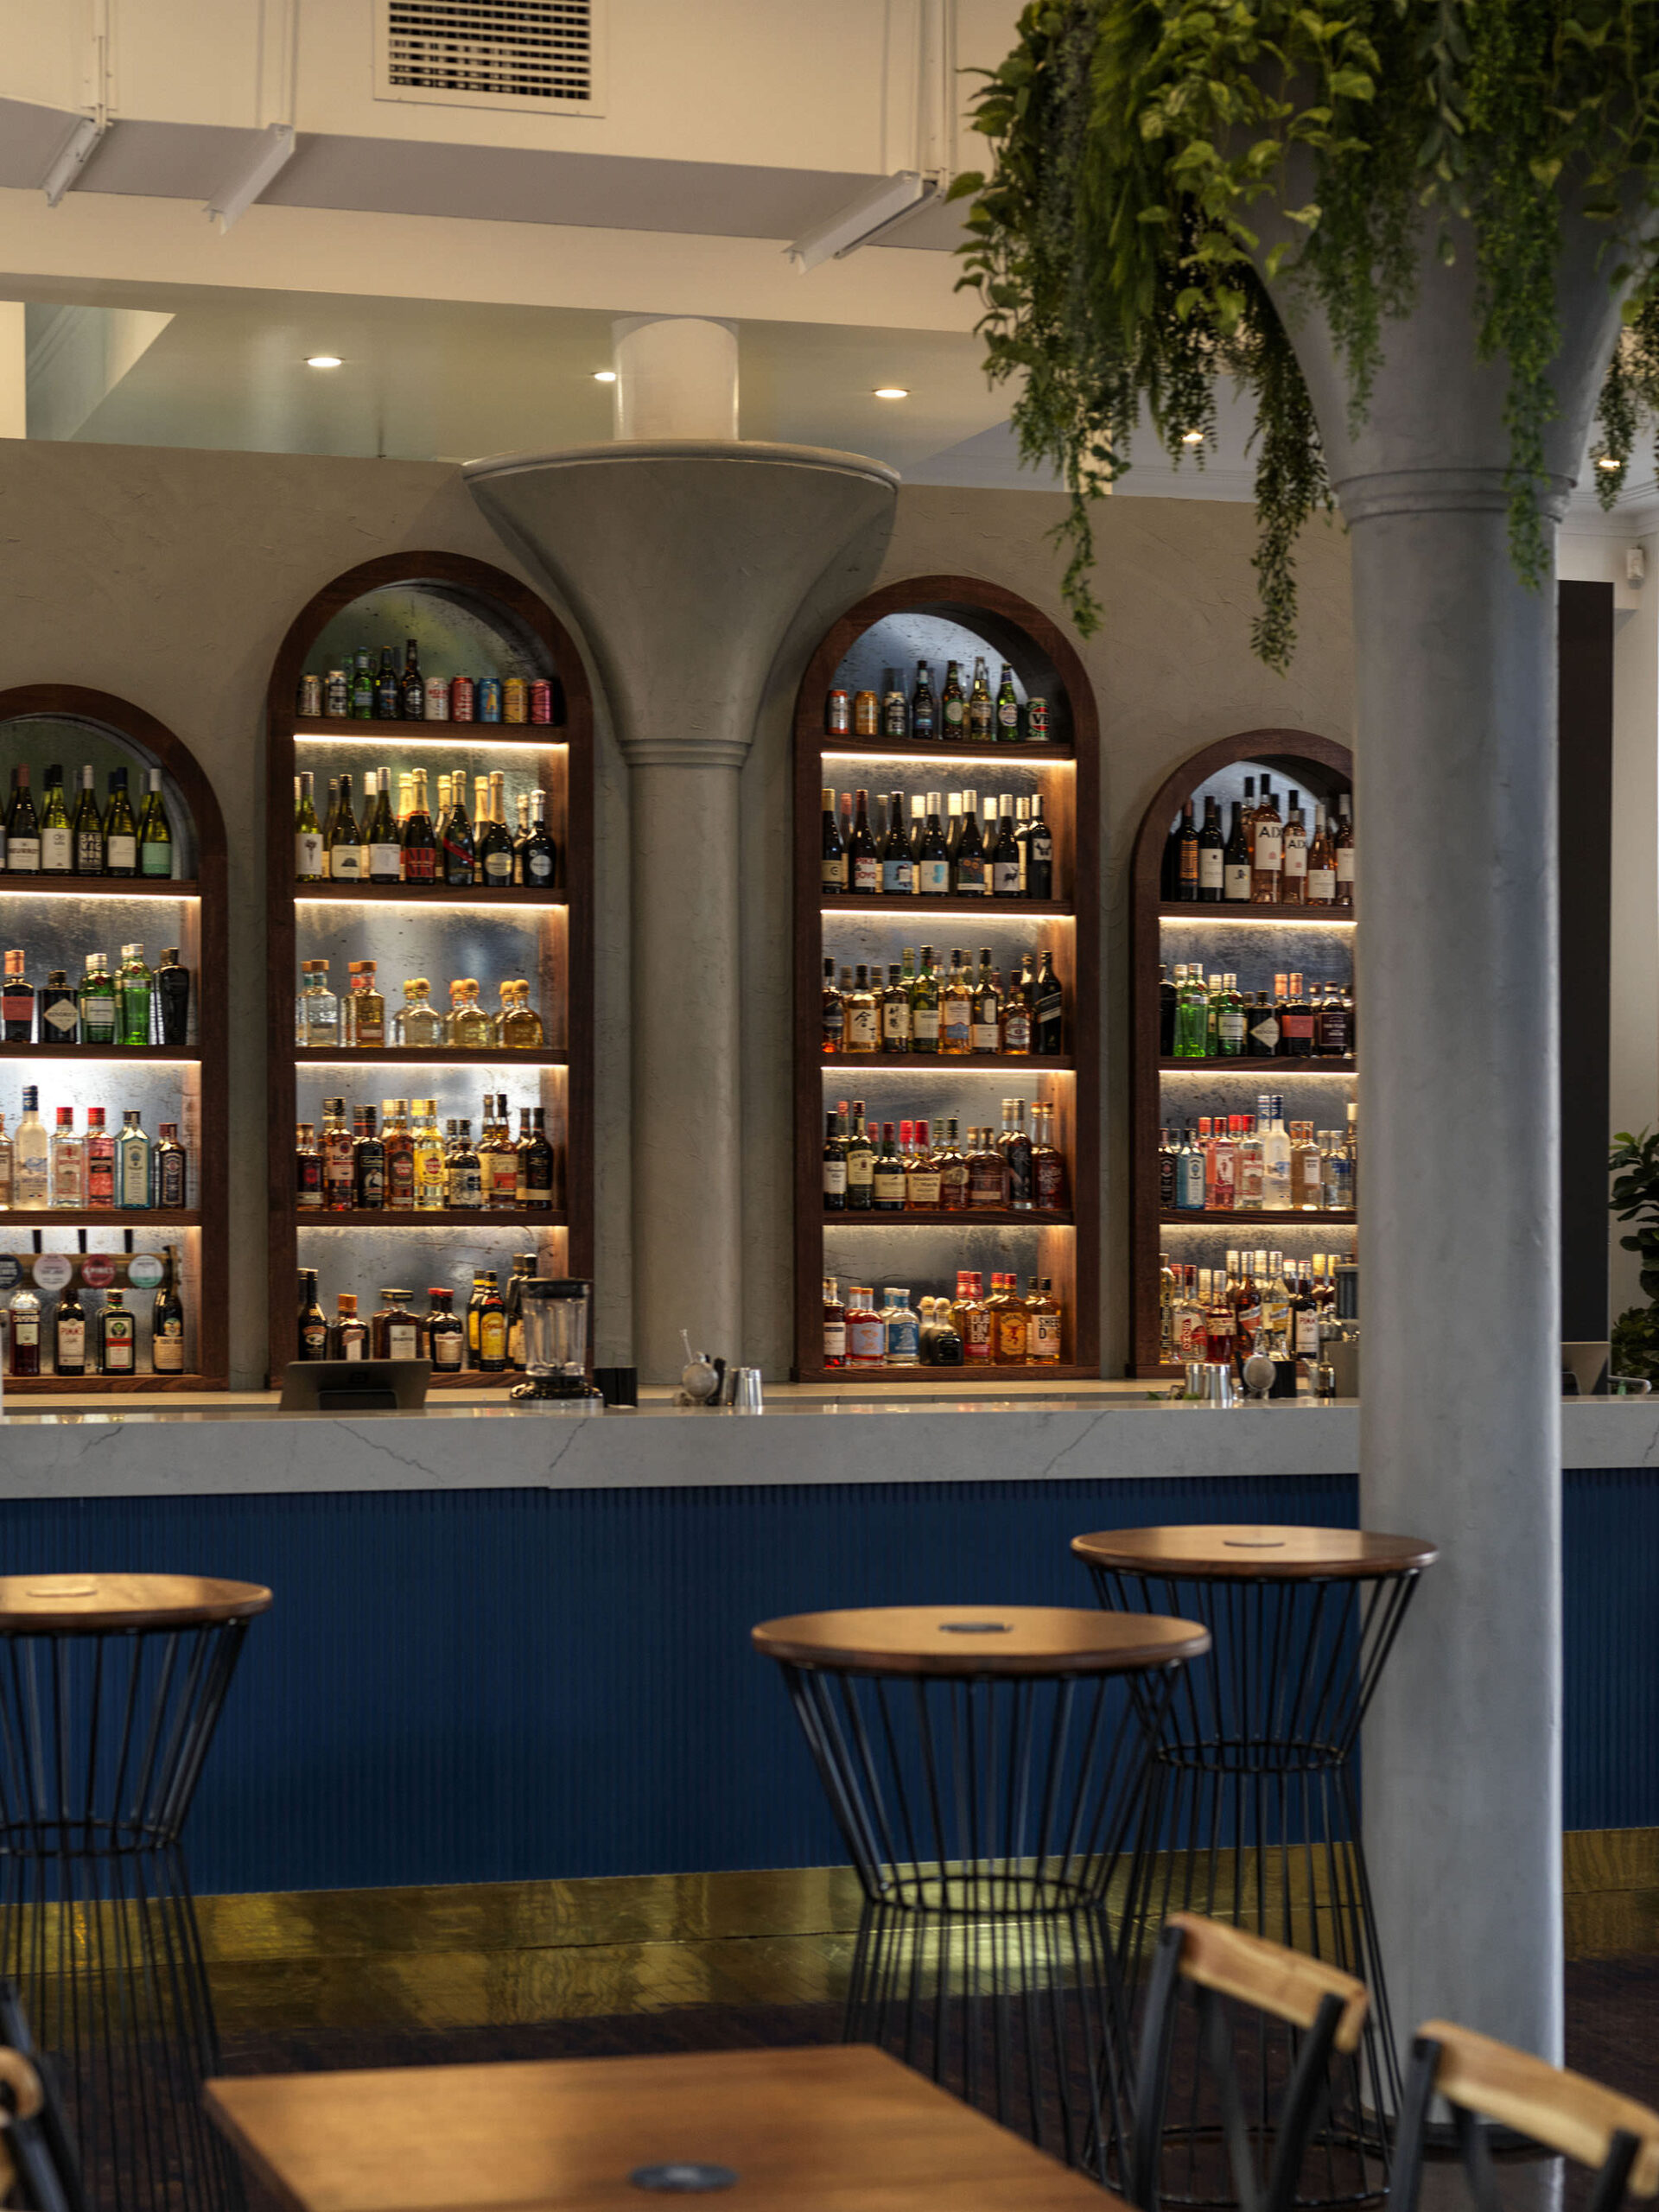 The custom made tallow wood and Rivera stone bar - home to 32 beers on tap.